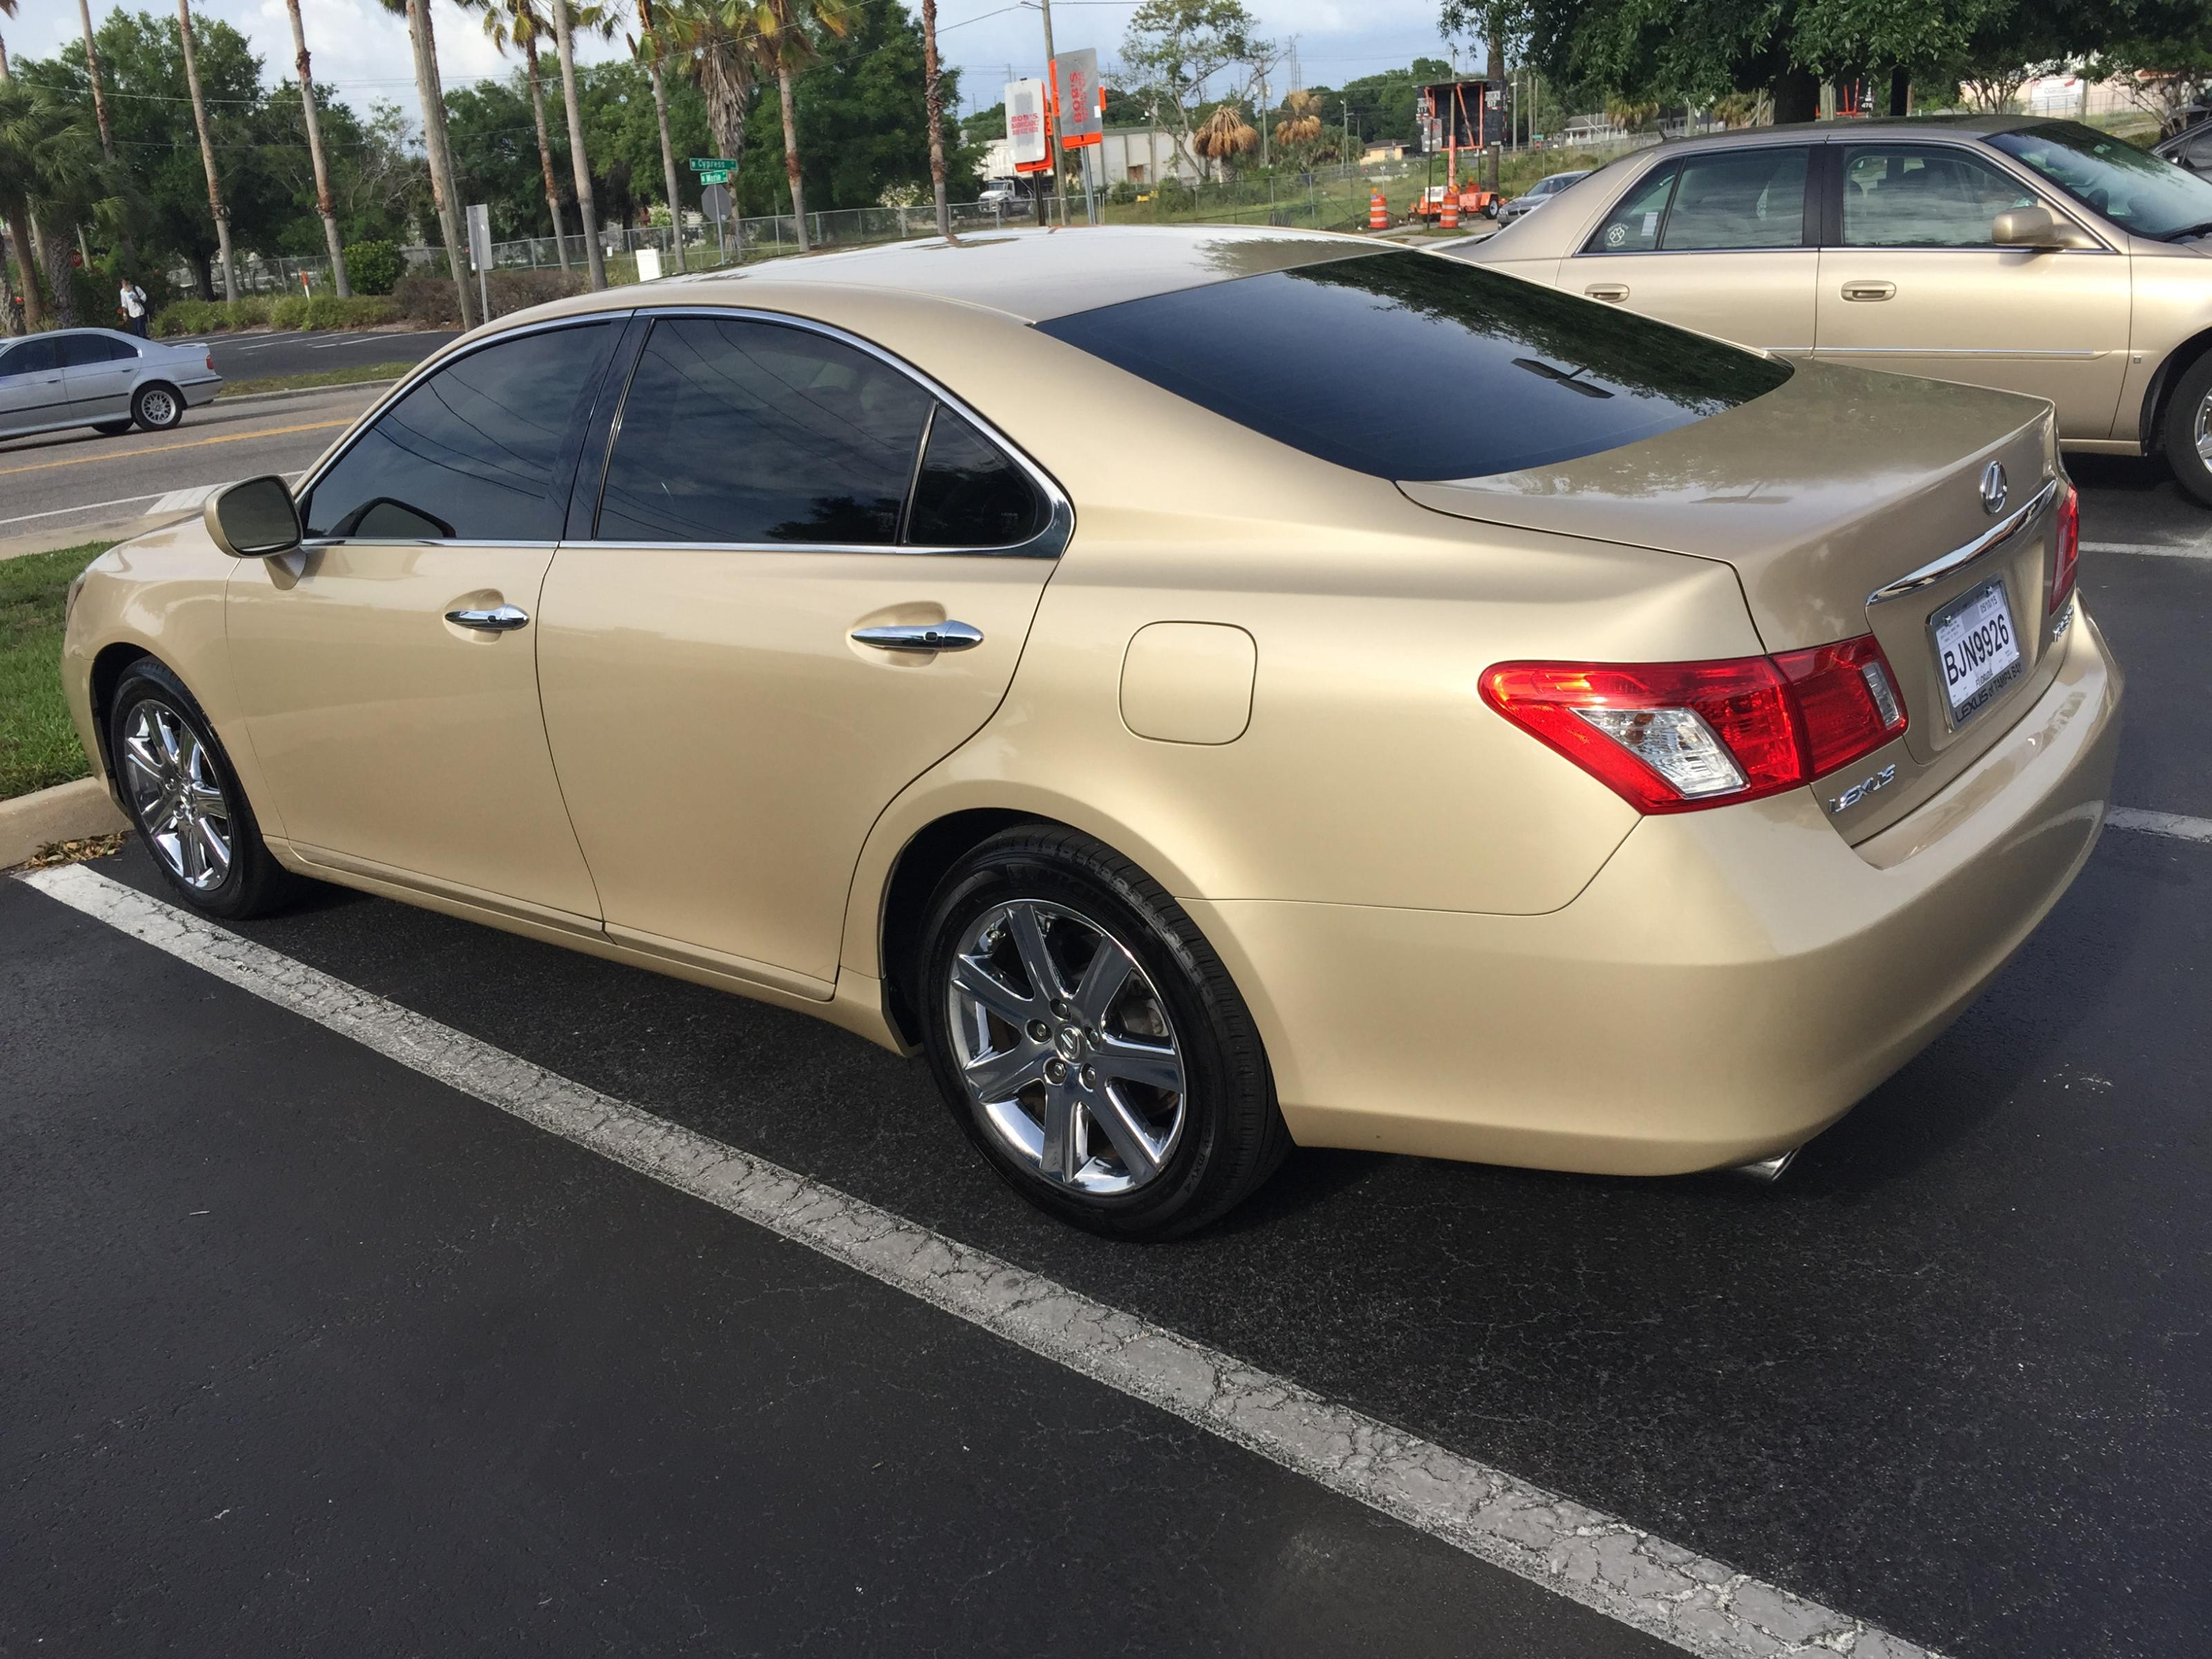 Wel e to Club Lexus ES350 owner roll call & member introduction